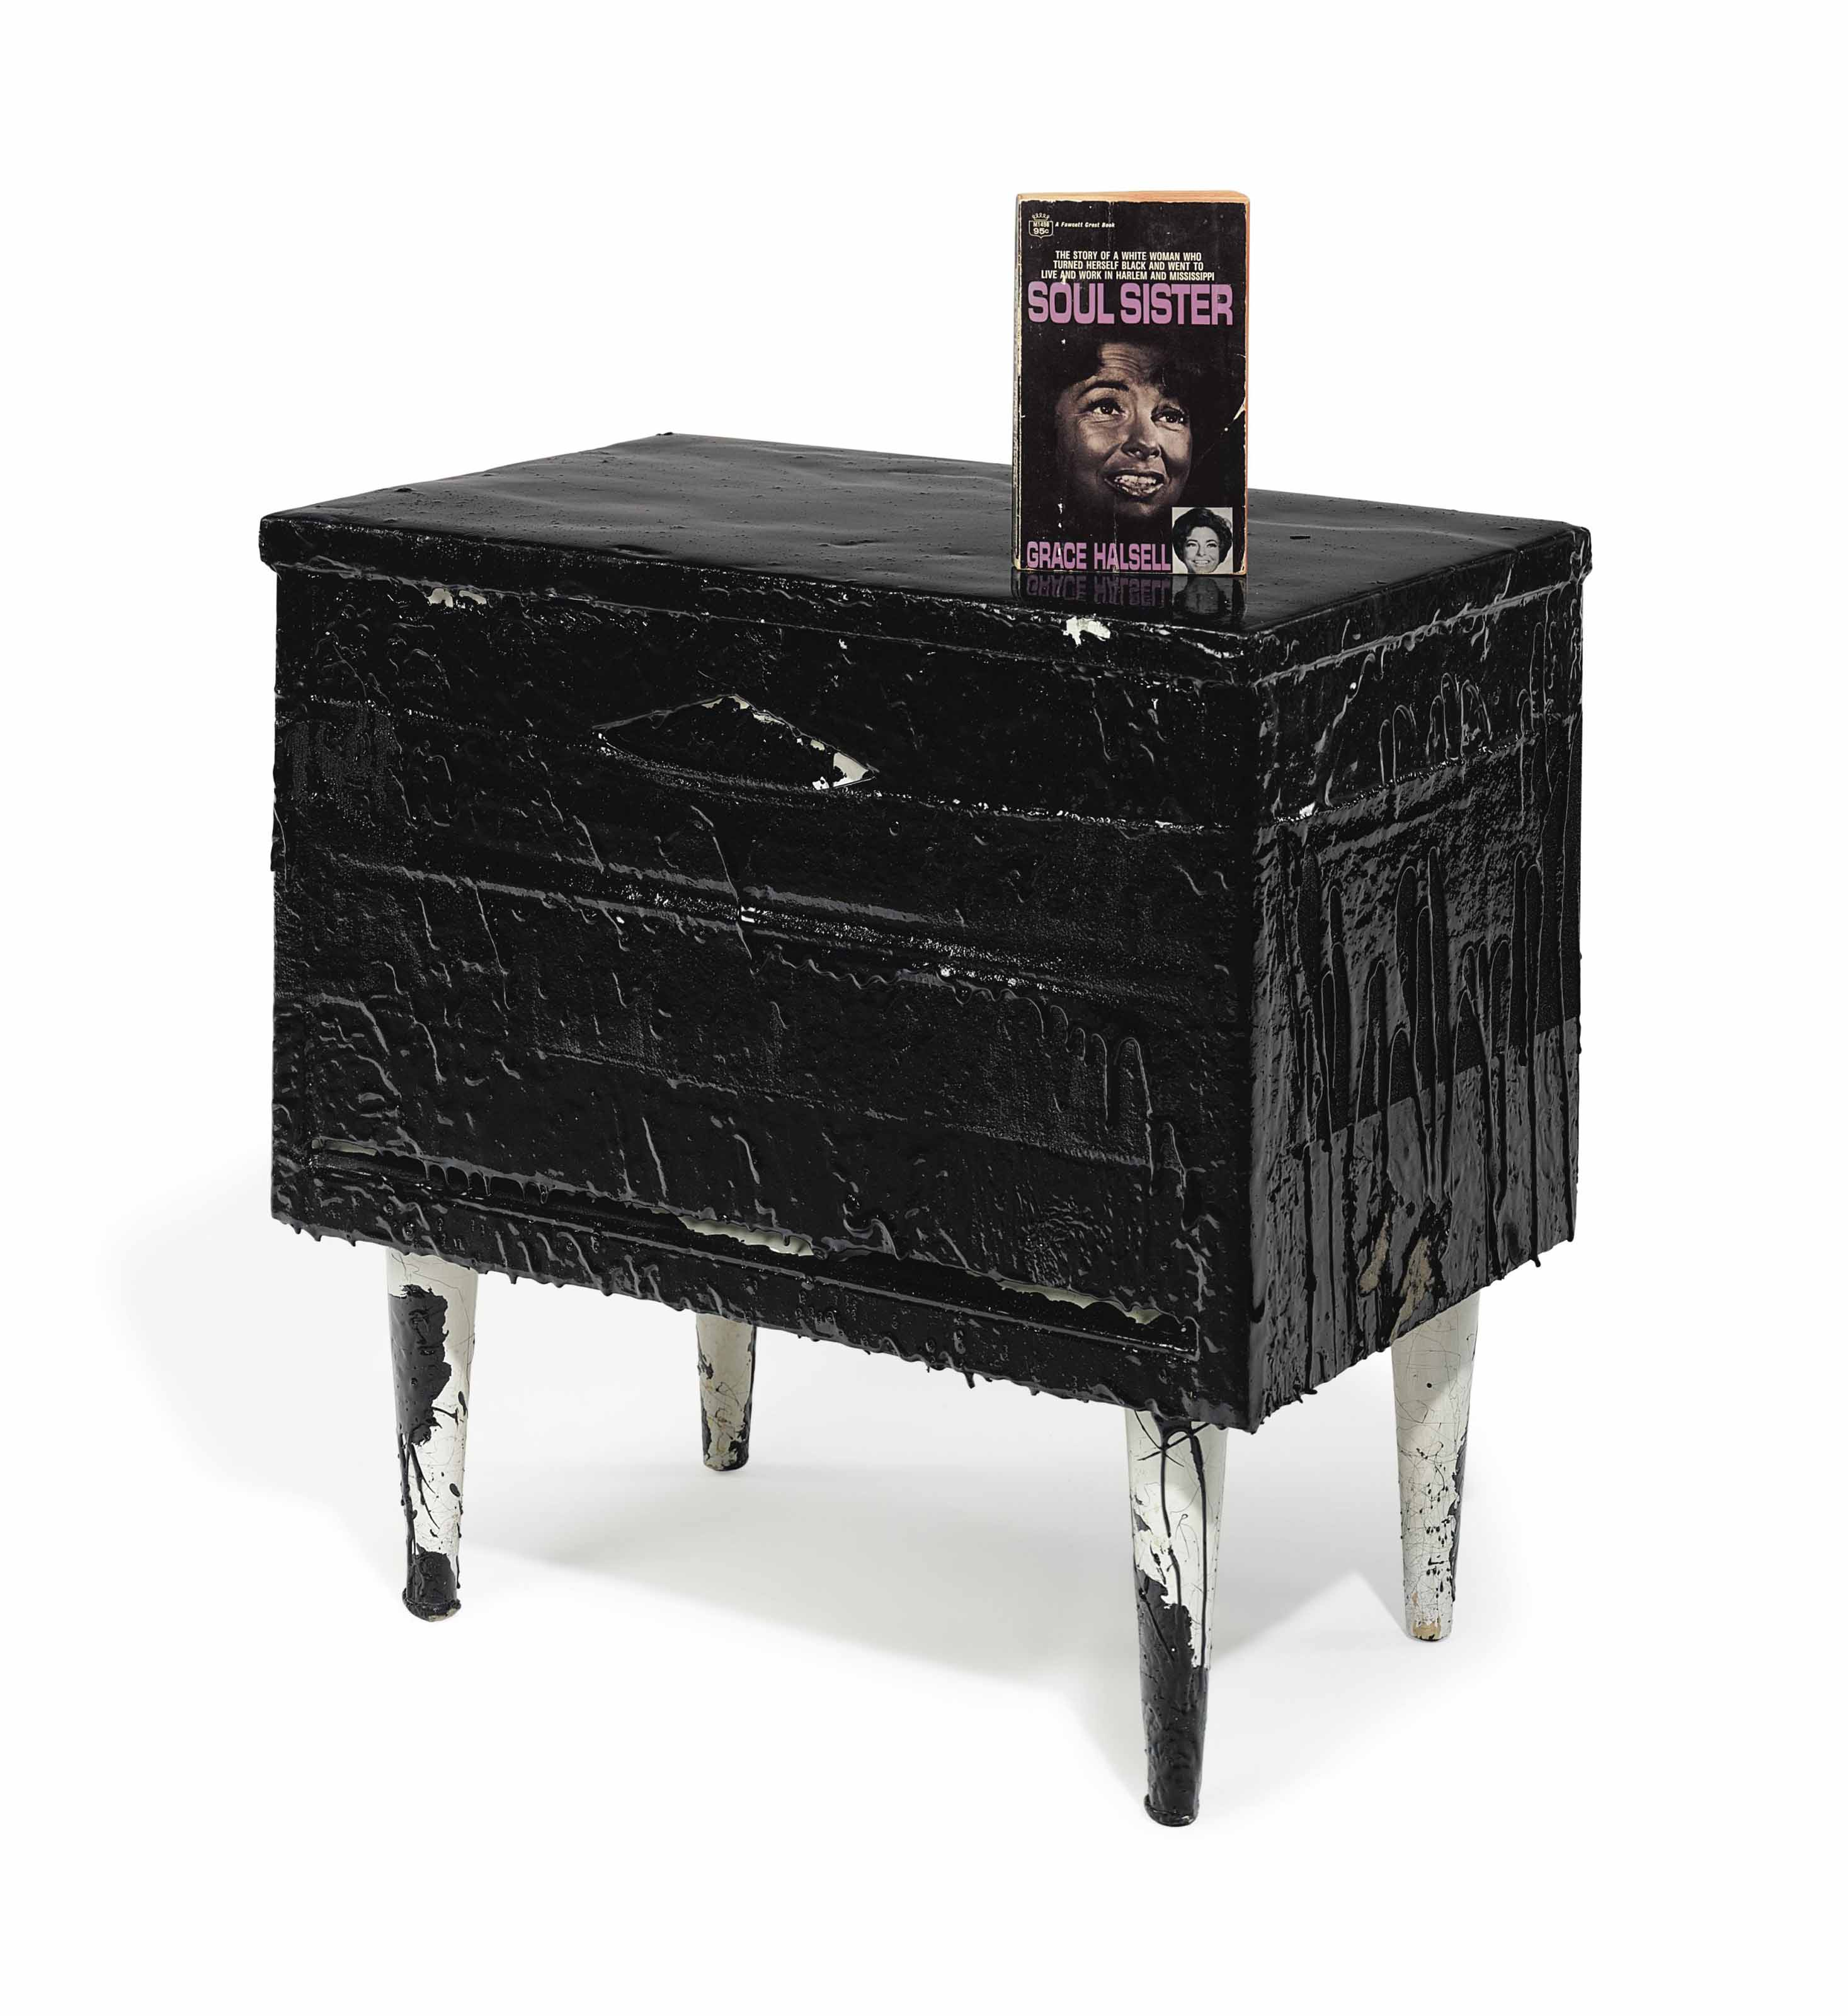 Night Stand for Soul Sister